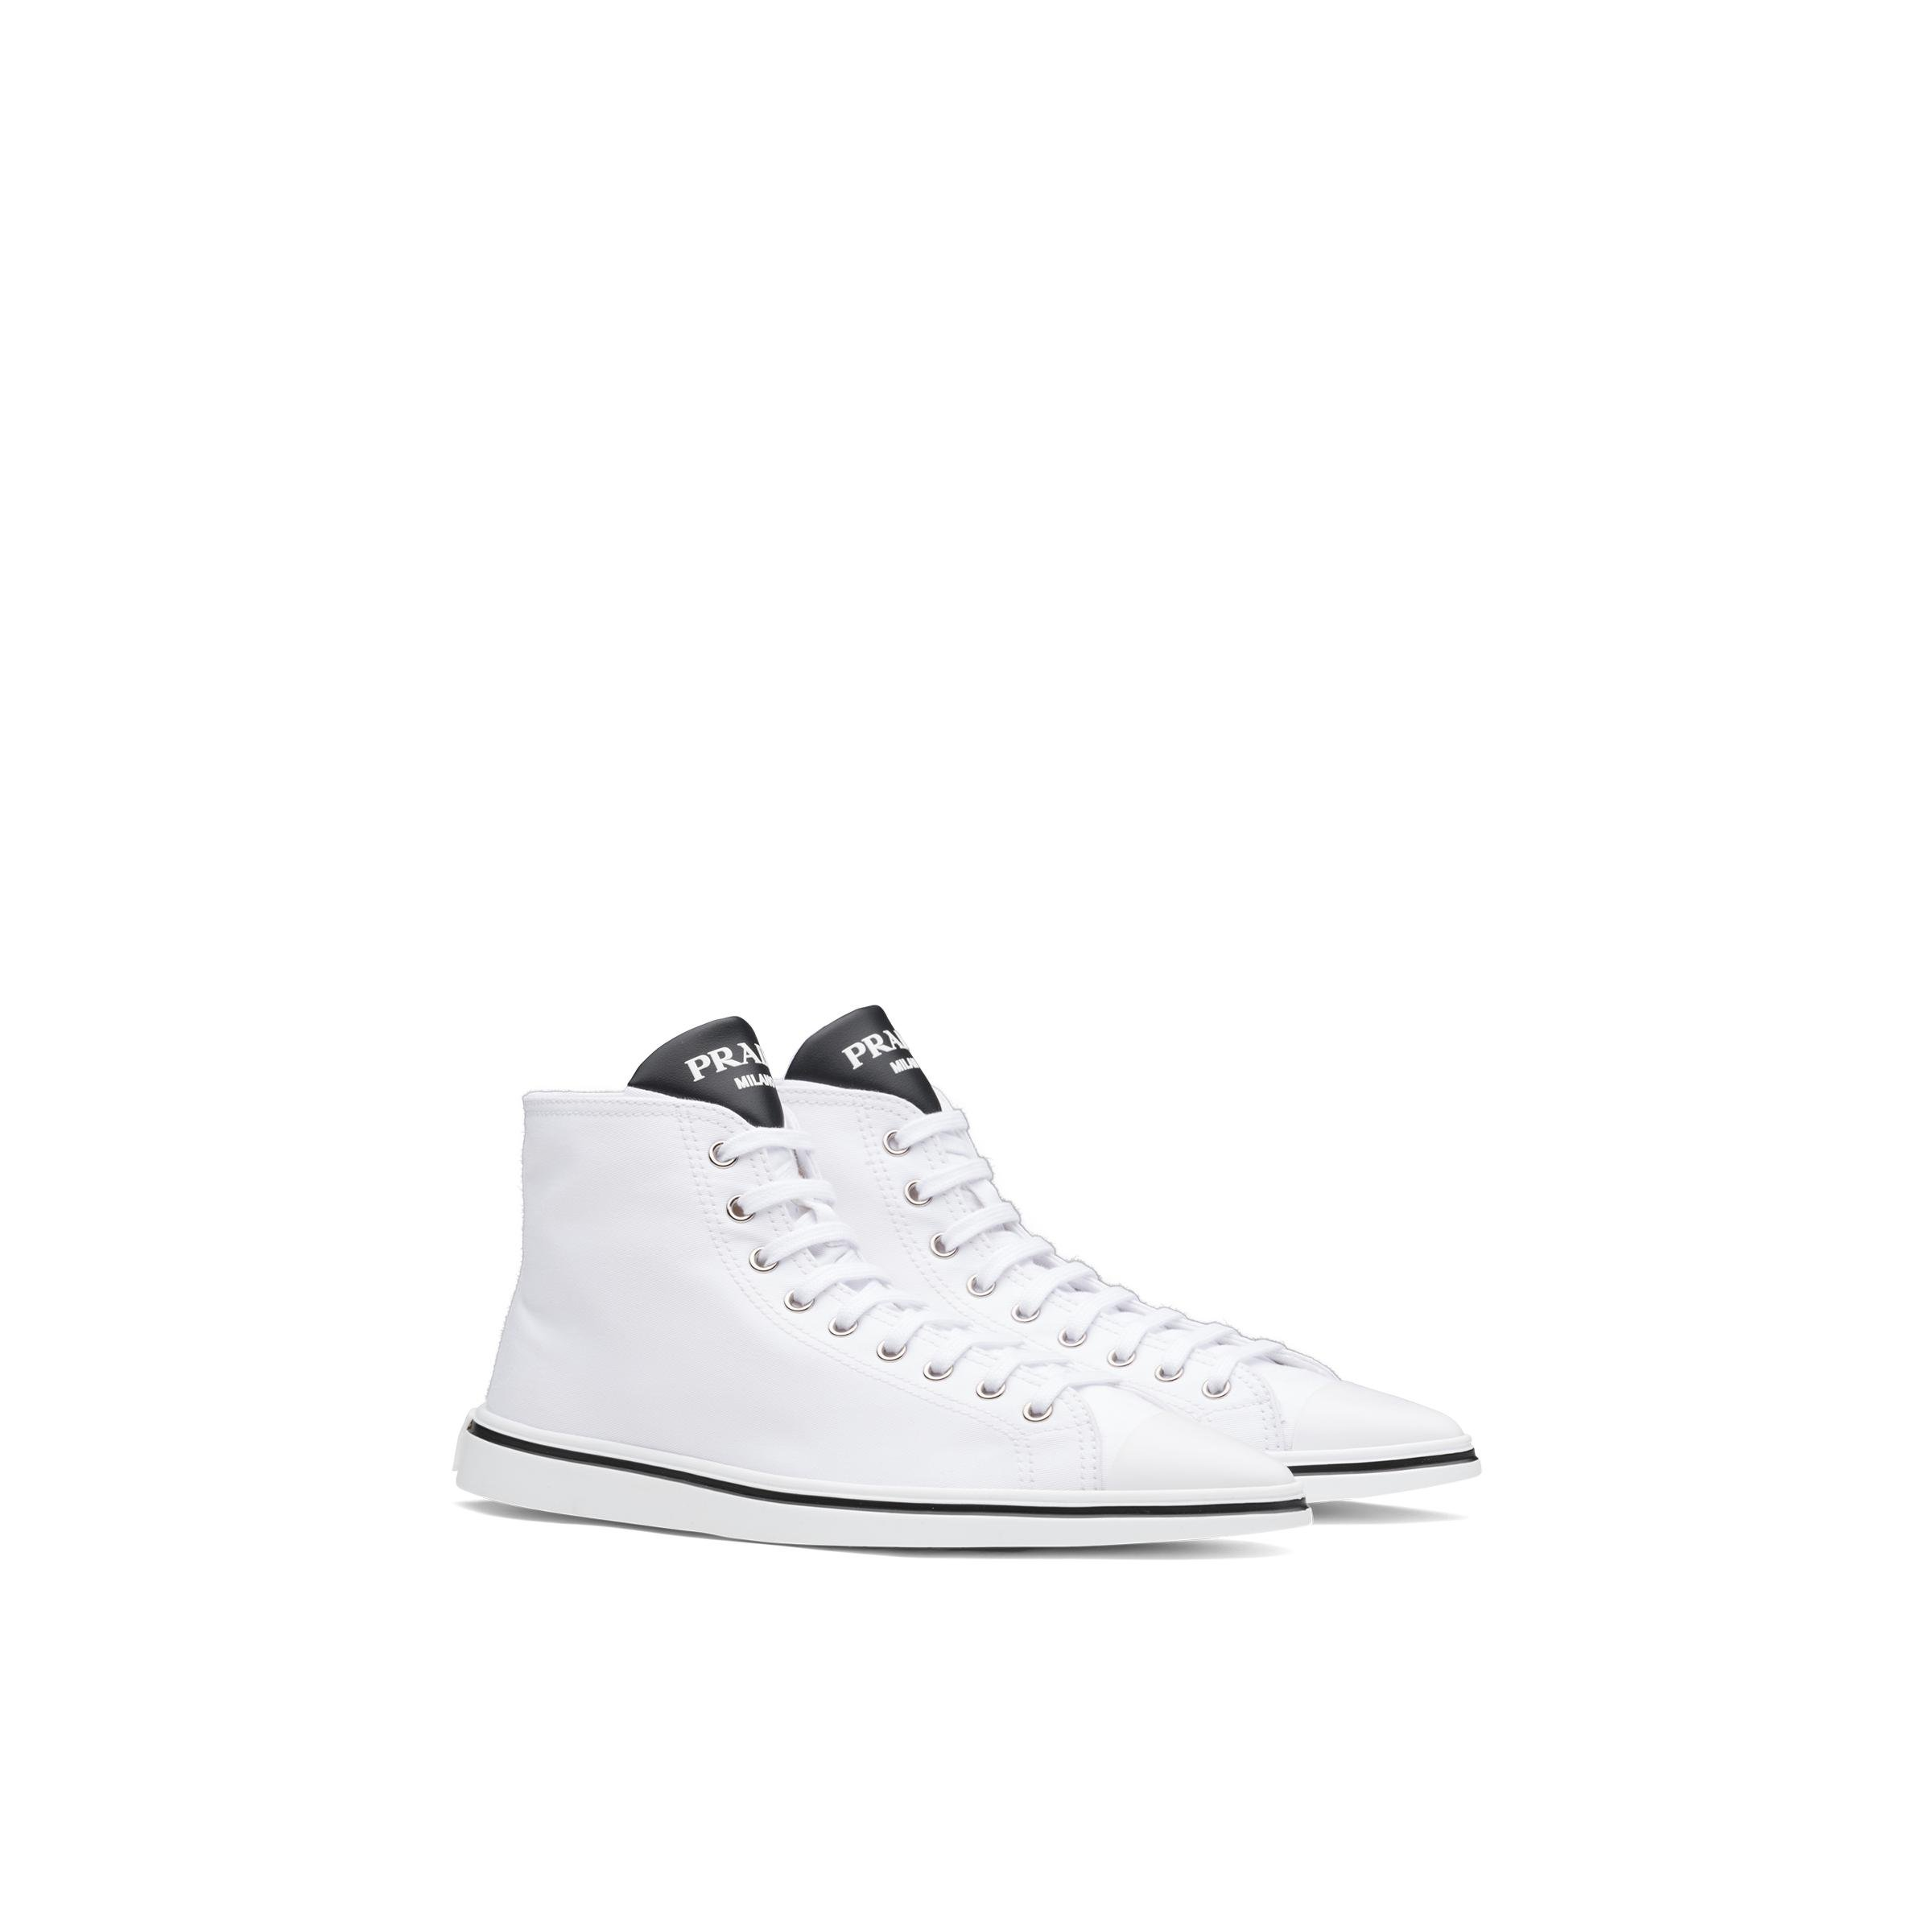 Synthesis High-top Sneakers Women White